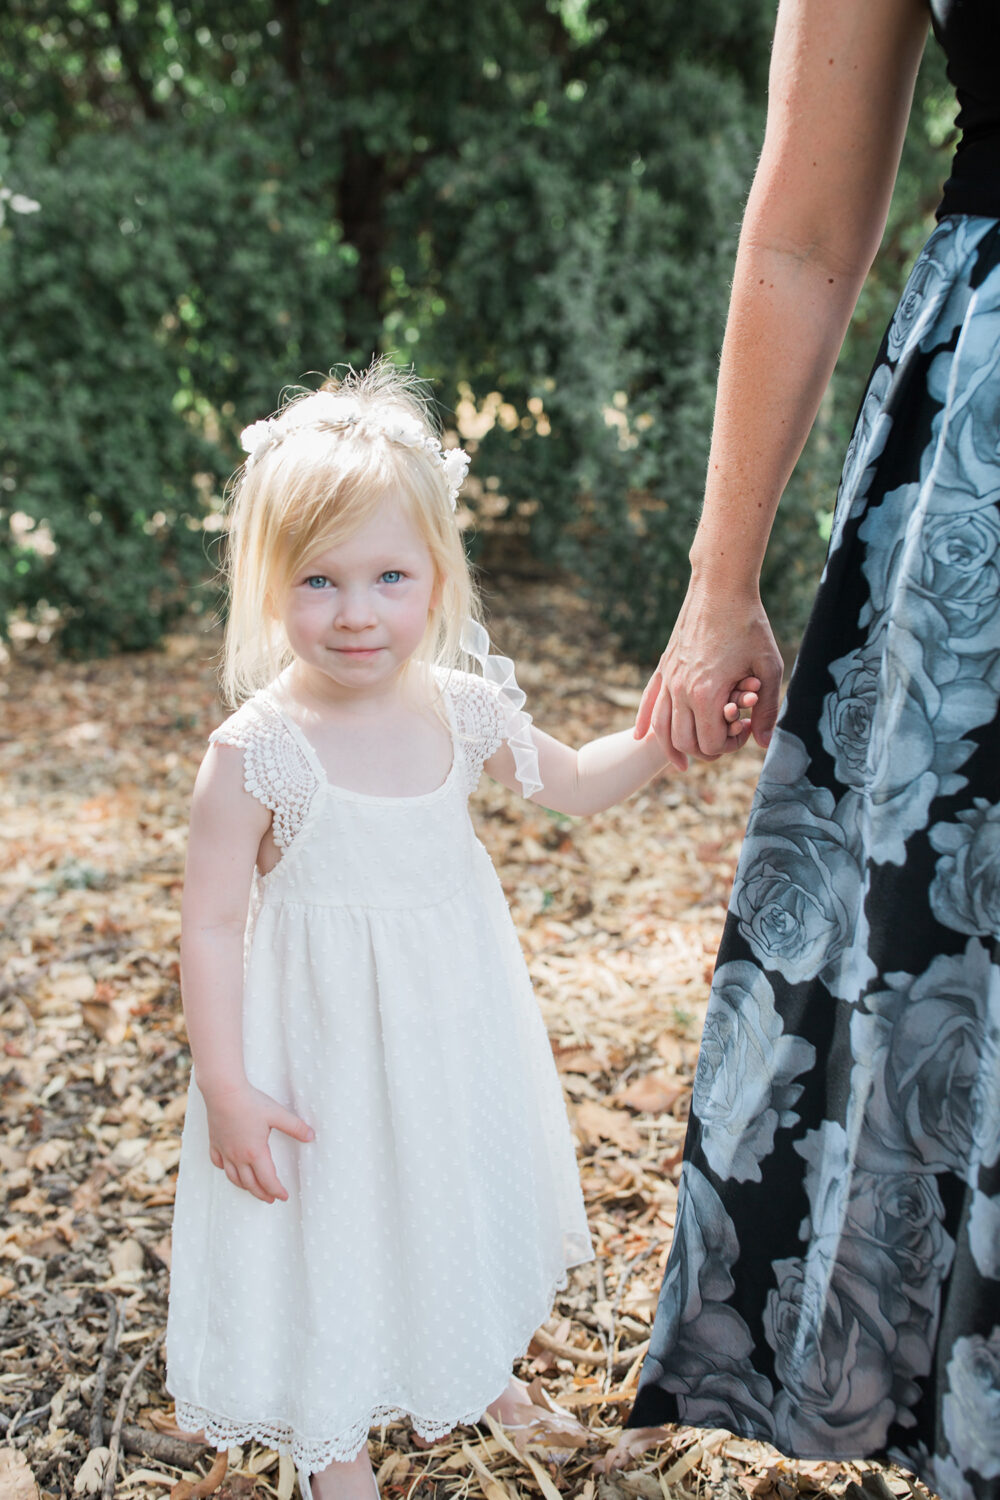 Looking for wedding outfit ideas? This bohemian flower girl dress is just adorable!